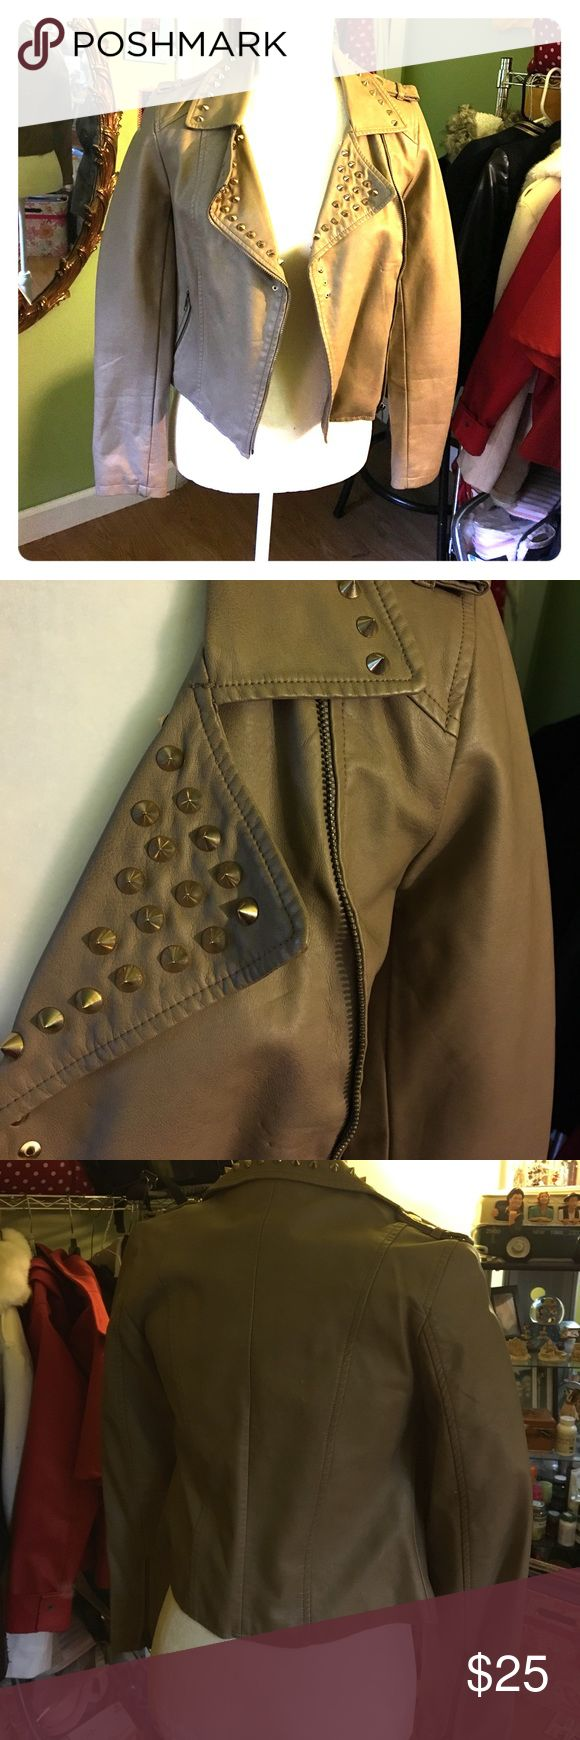 BNWT forever 21 studded spiked leather jacket This jacket is so awesome. The spikes are really high quality. Size small. Lady Gaga, Kylie Jenner, Kim kardashian style. Forever 21 Jackets & Coats Blazers